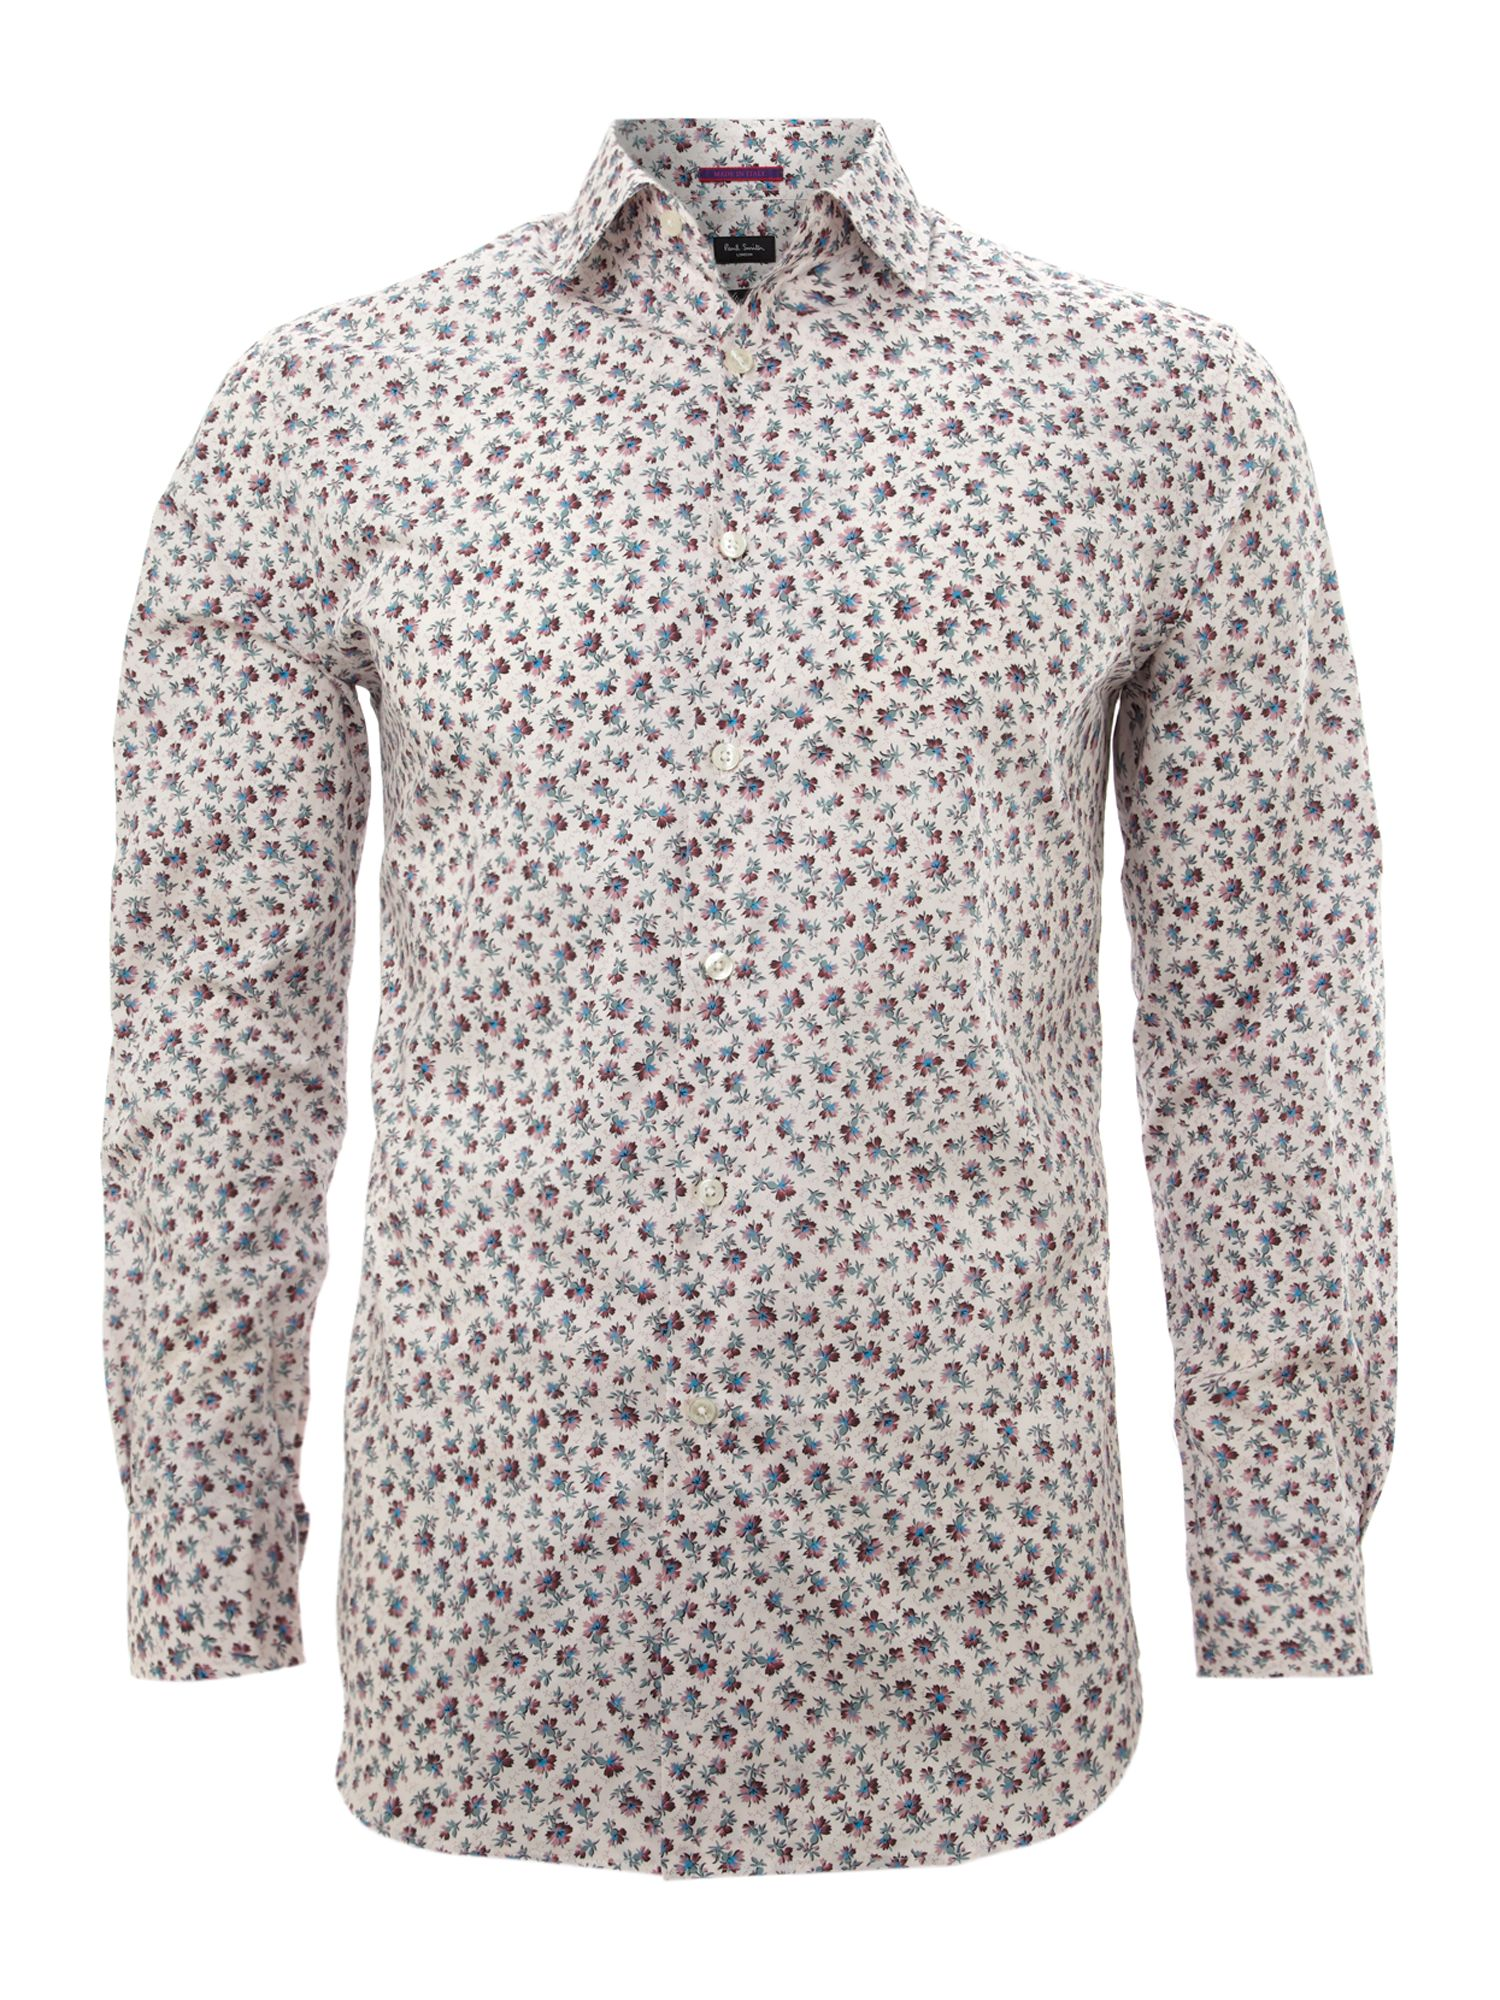 Long sleeved bright floral shirt